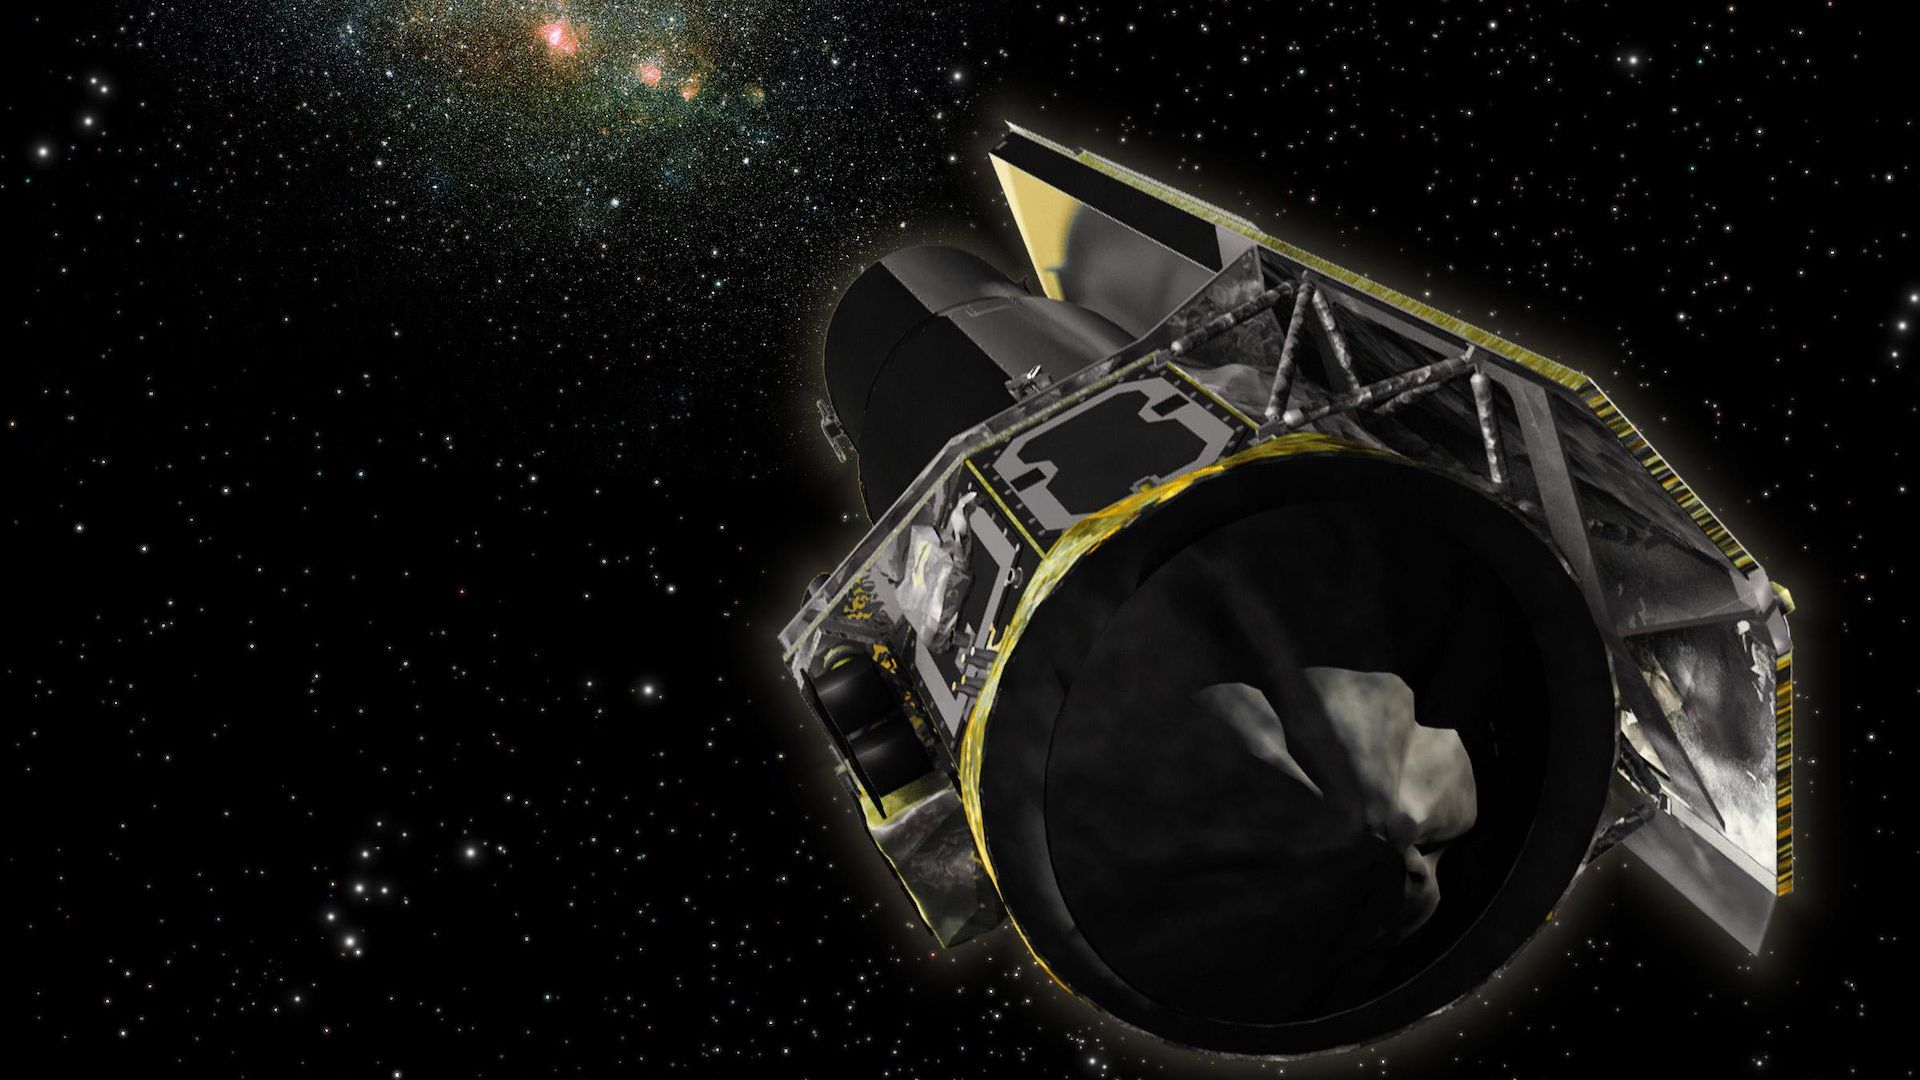 NASA will end the Spitzer Space Telescope's mission in 2020